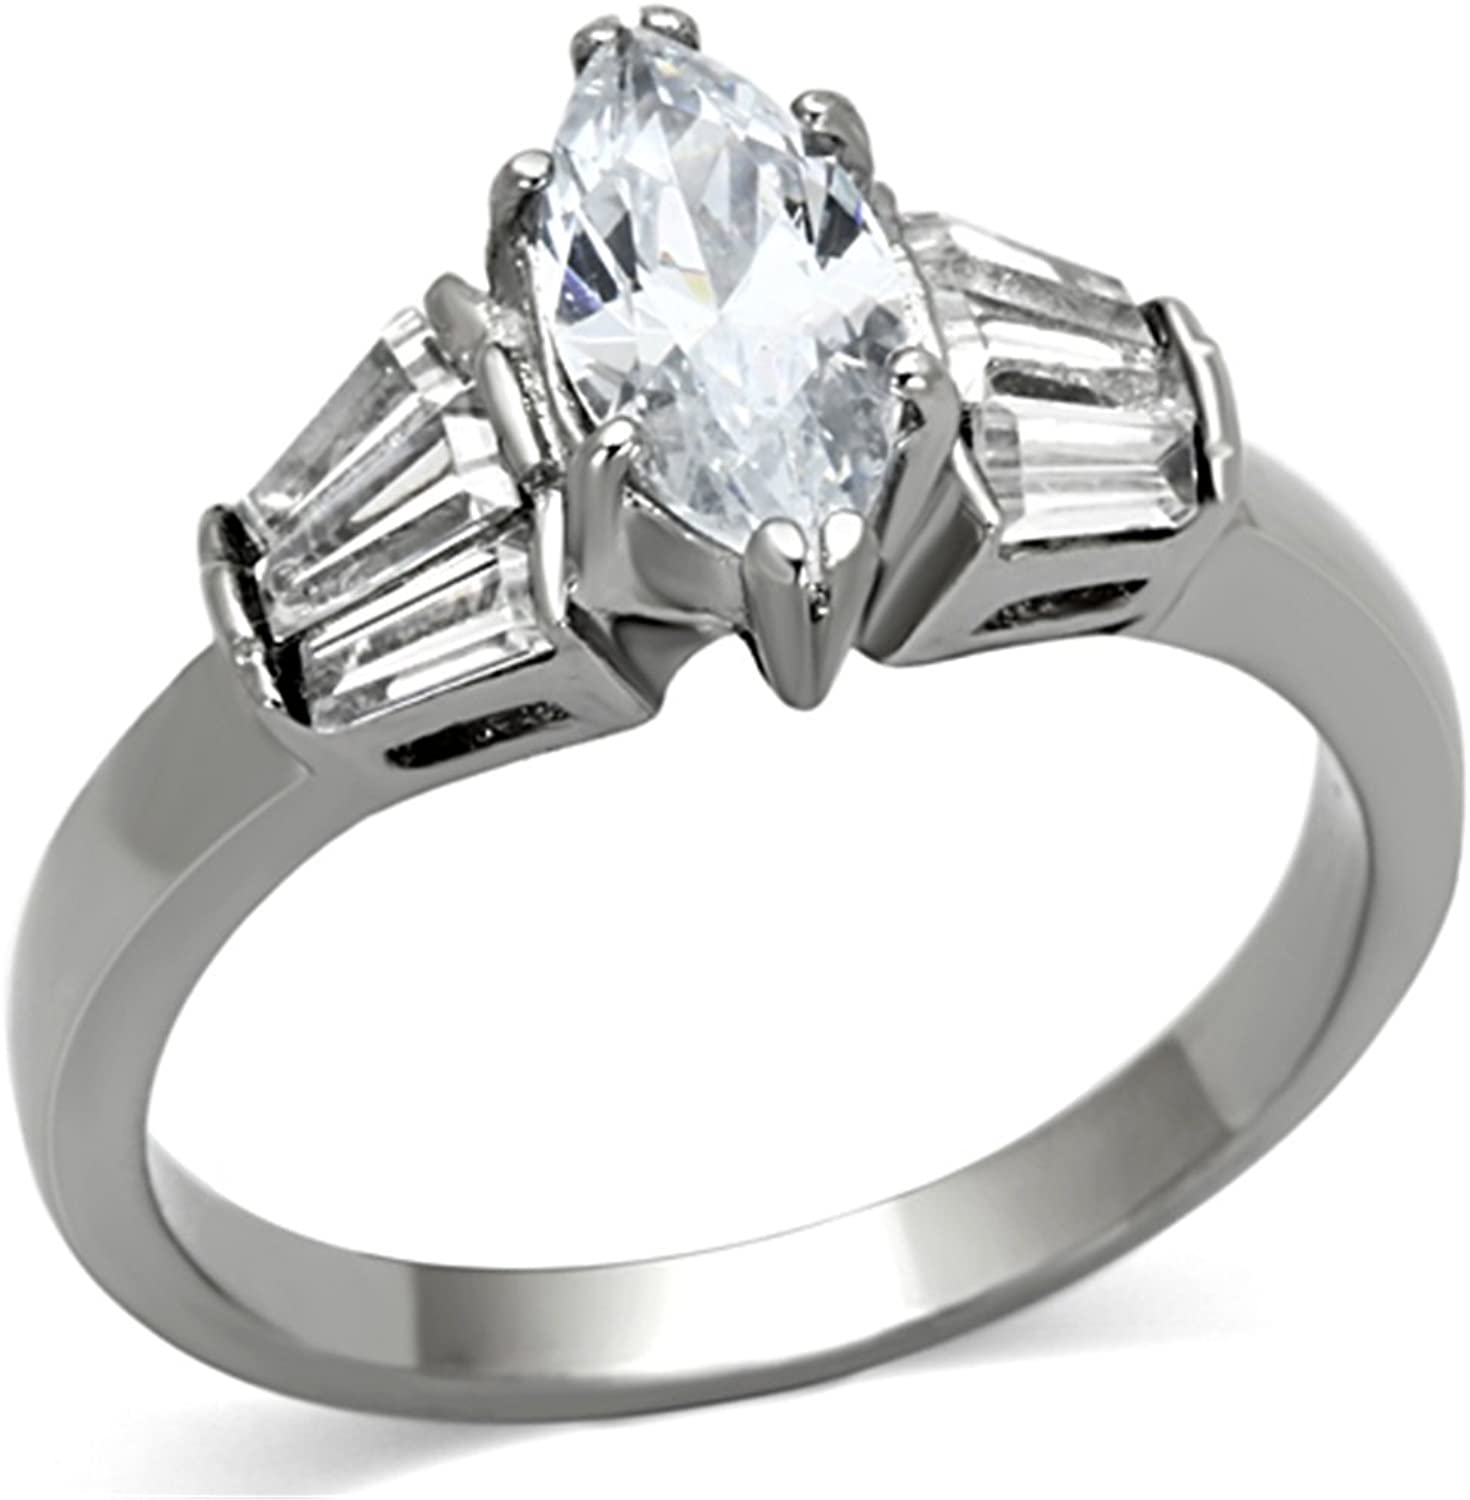 10x6 mm Marquise Cut Clear CZ Tarnish Free Stainless Steel Wedding Ring